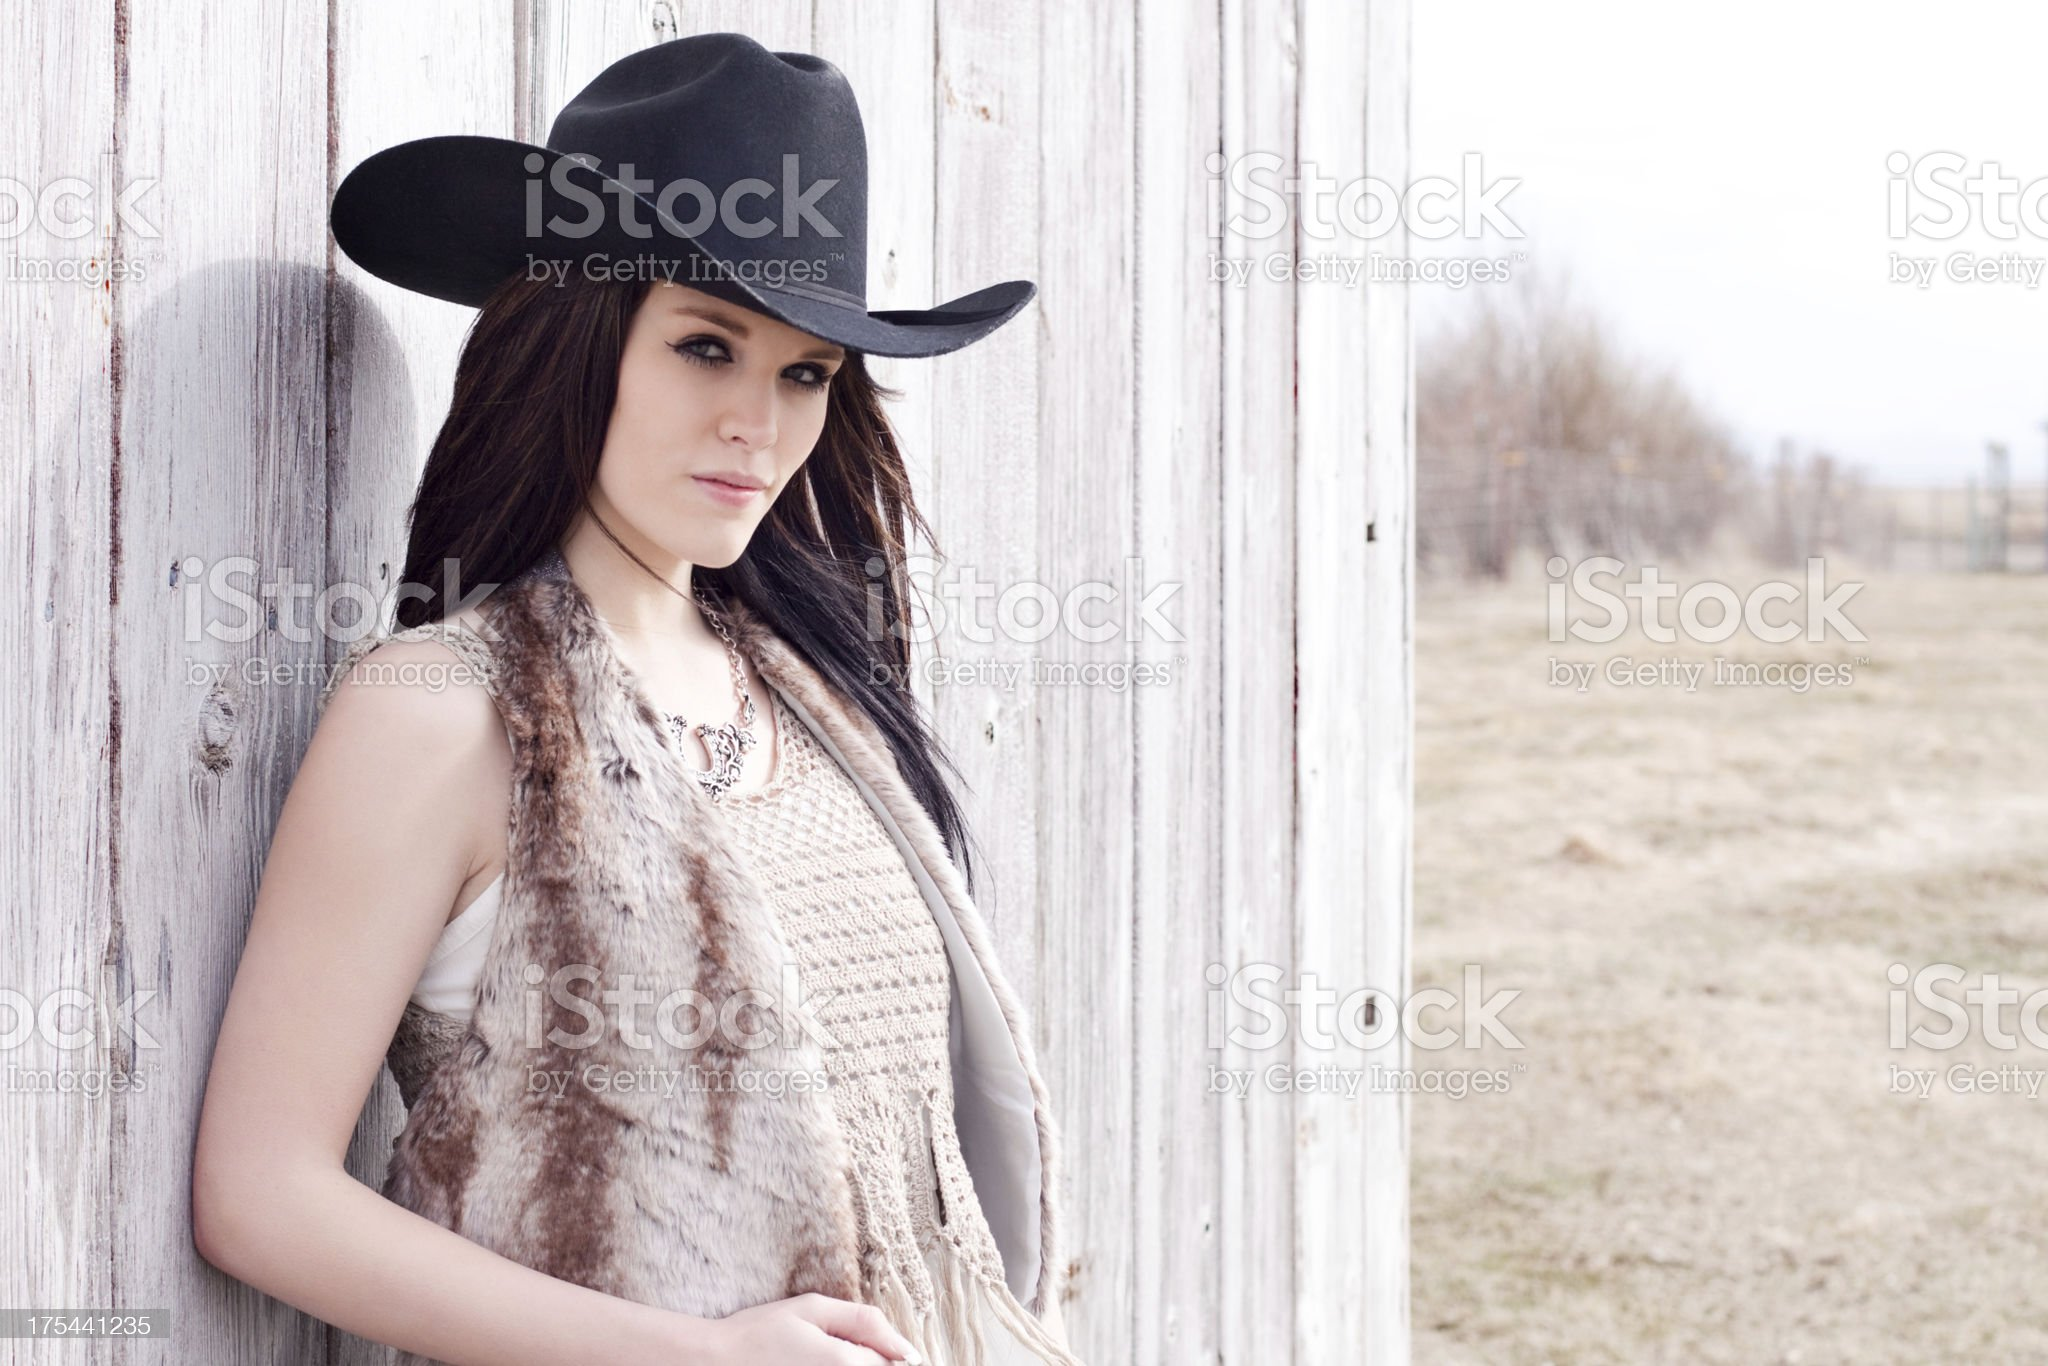 Western Cowgirl Leaning Against Rustic Wood Fence royalty-free stock photo